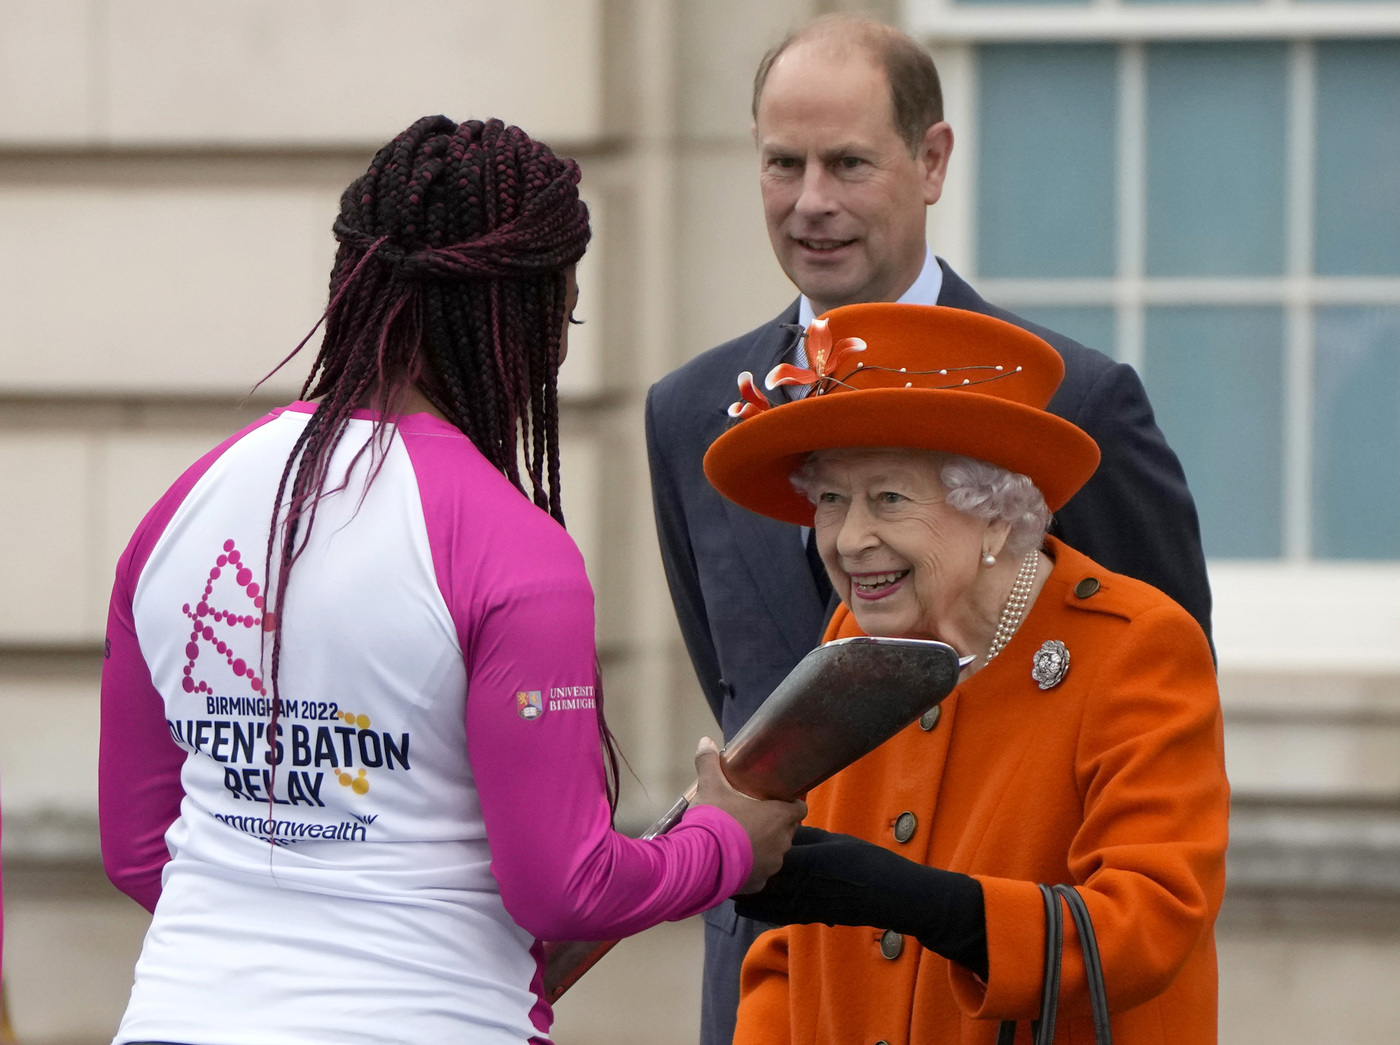 Longines Commonwealth Games Event: Her Majesty the Queen launches the 16th official Queen's Baton Relay for the Birmingham 2022 Commonwealth Games 2